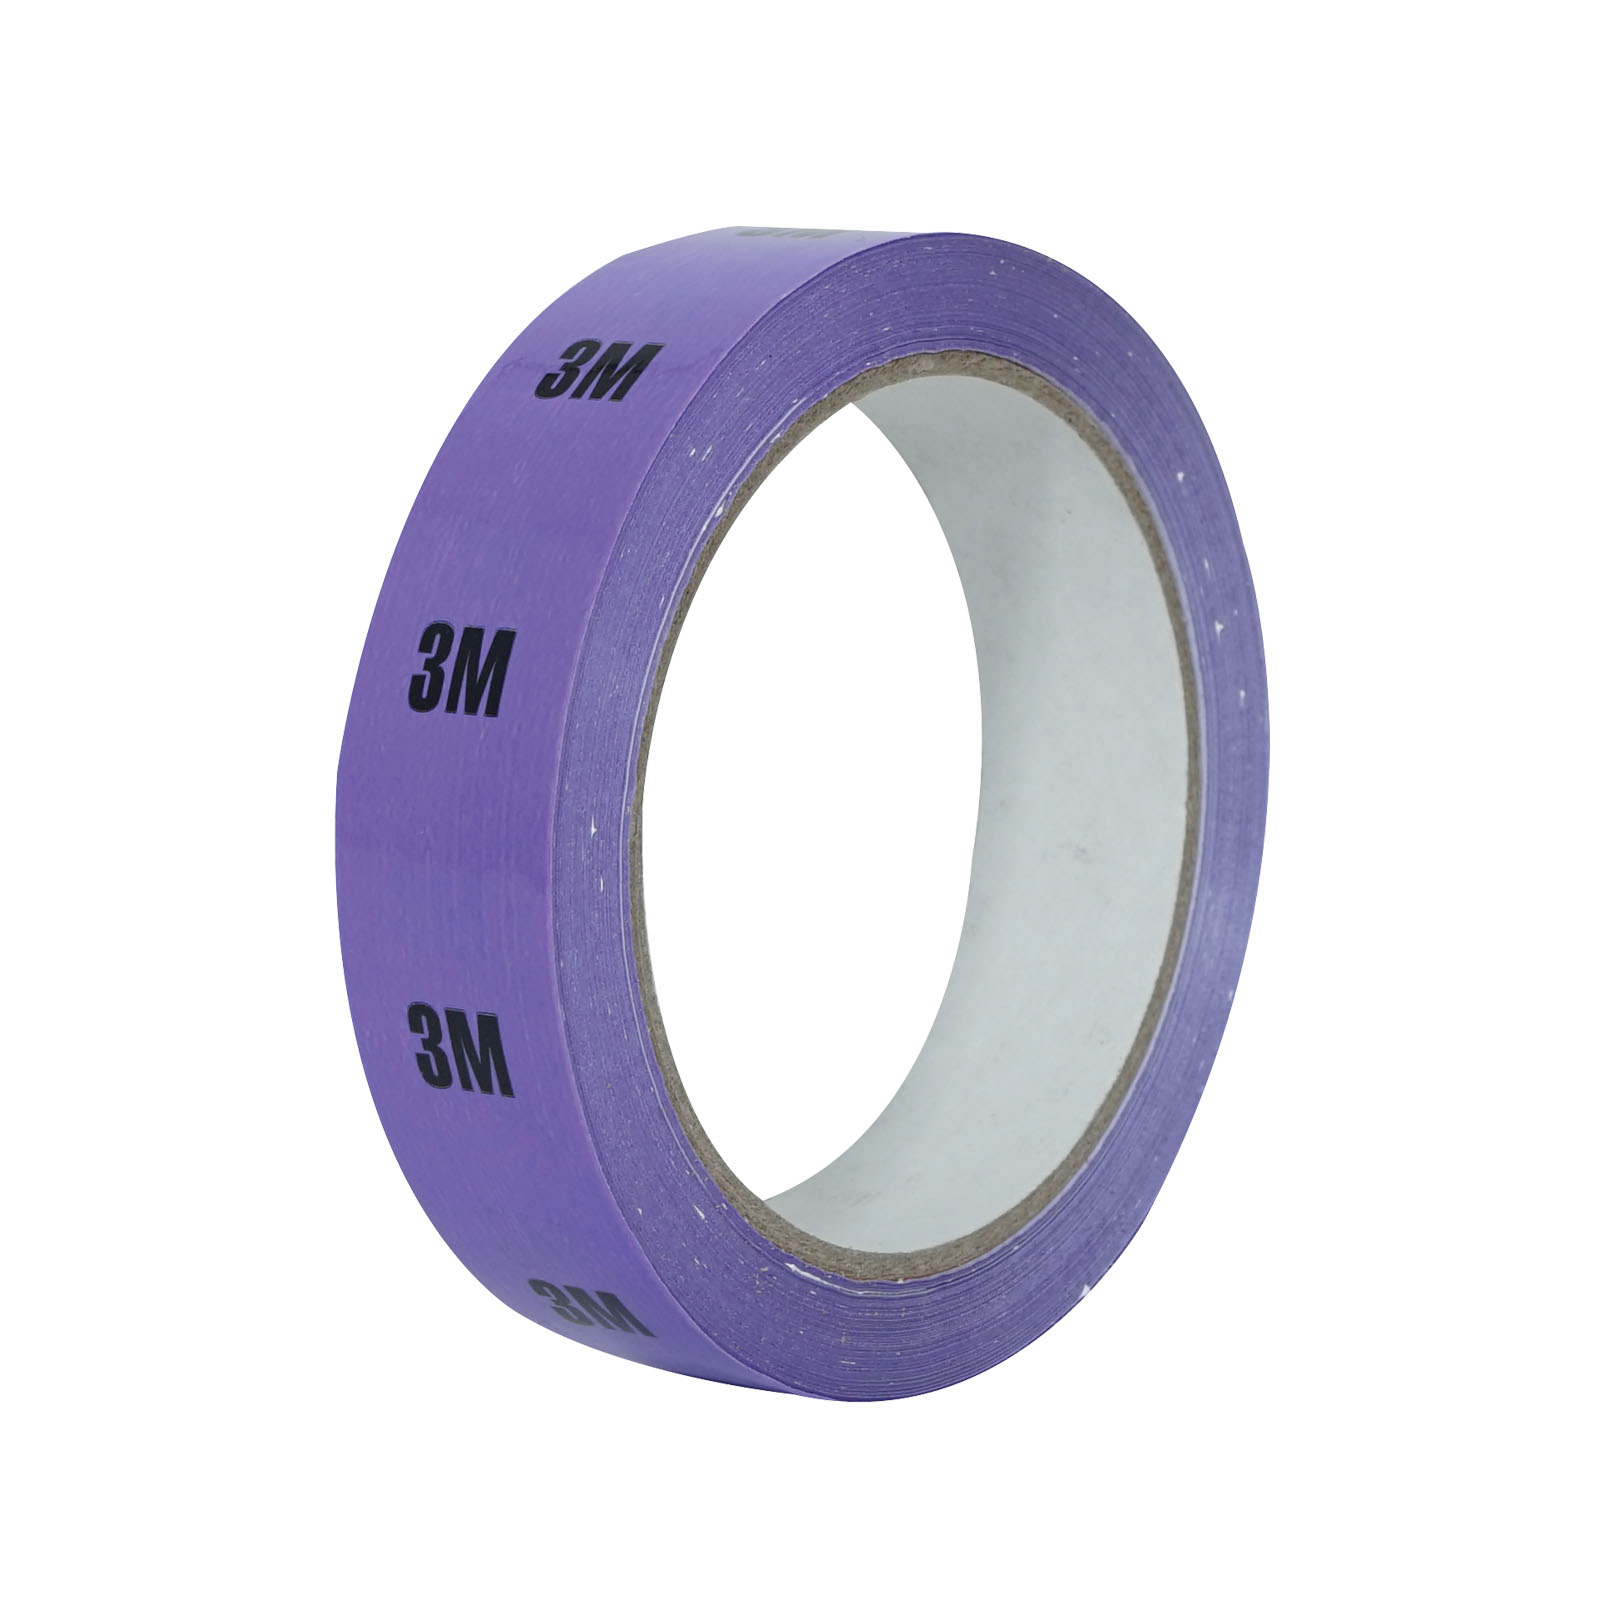 3m Lilac Cable Length ID Tape 24mm x 33m